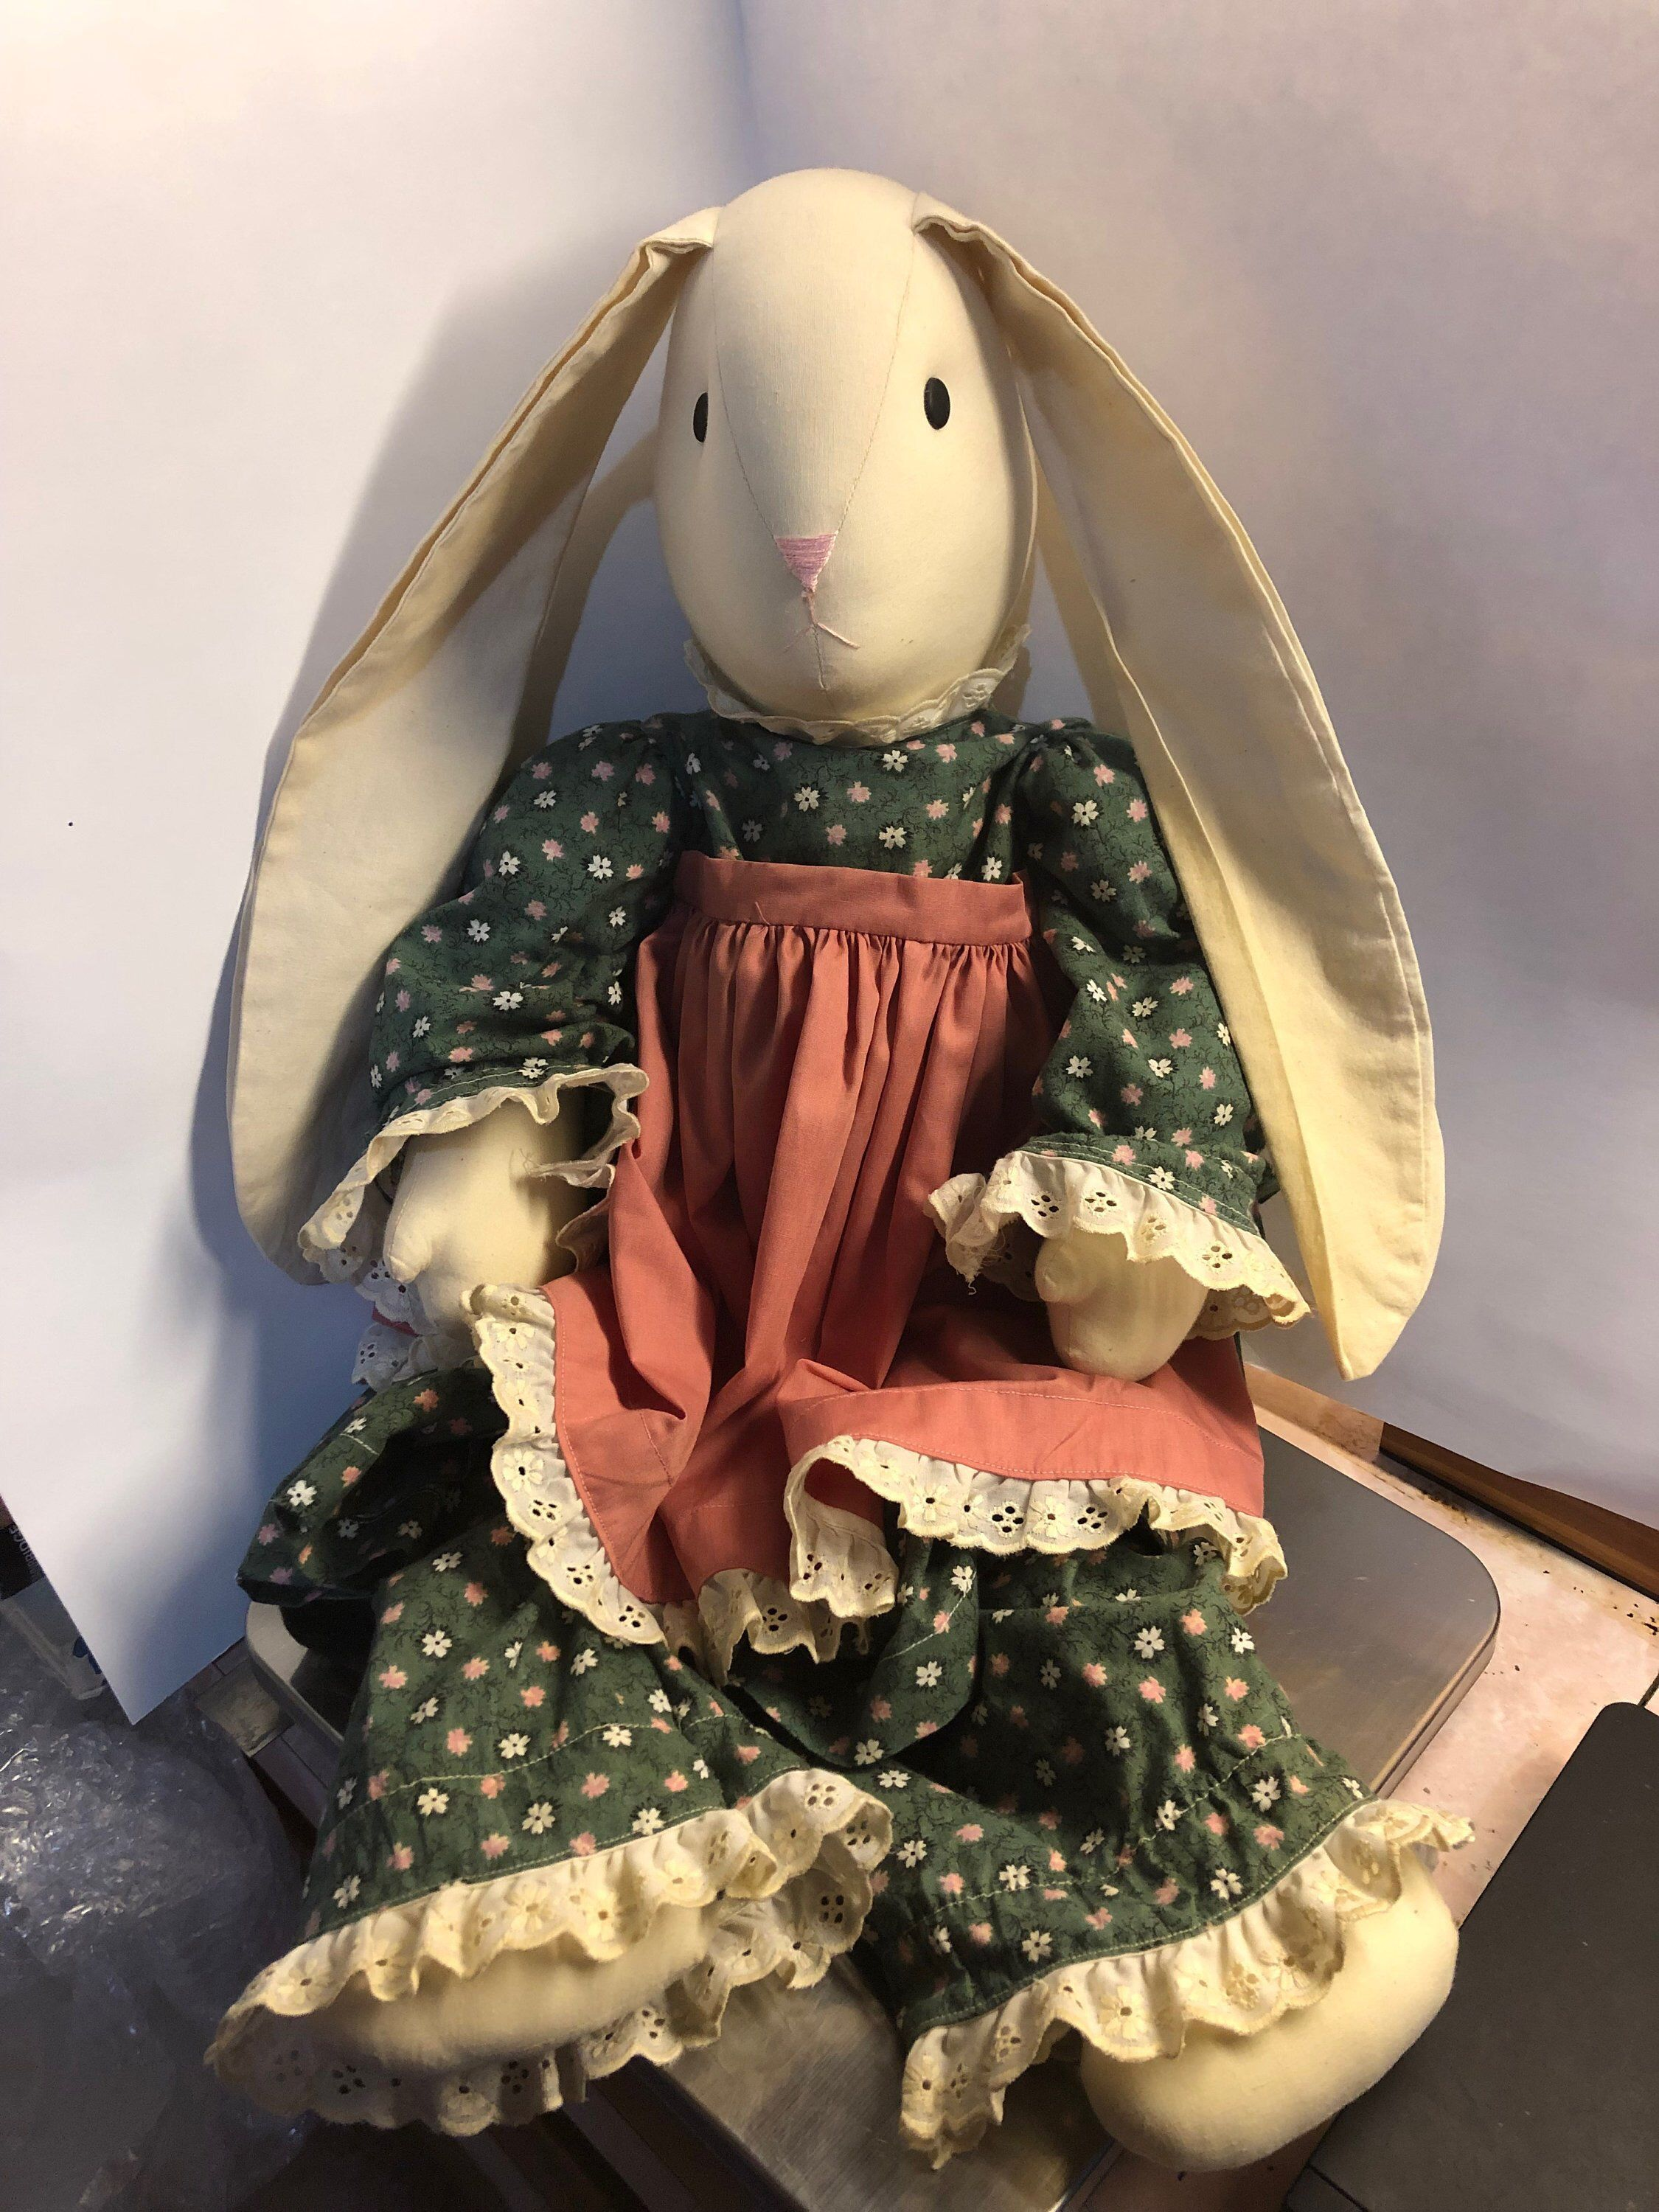 Vintage Country Primitive Bunny Rabbit Cloth Doll with Dress is part of Vintage Country Clothes - Used  Is a 26 inch doll  Measures 26 x 14 x 6 inches  The bunny is wearing a prairie dress  Overall good condition